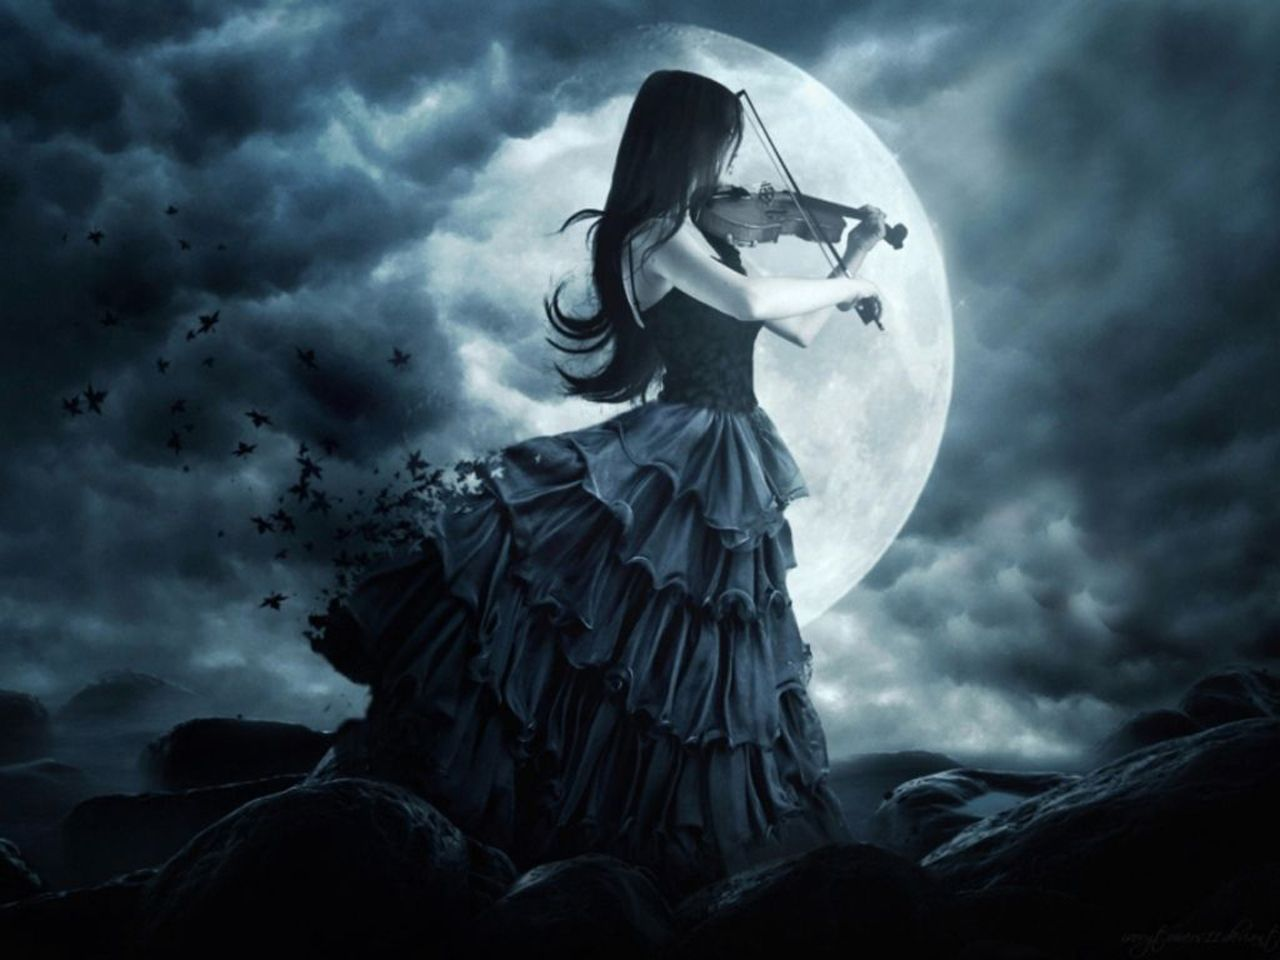 Beautiful Romantic Moonlight Wallpapers Gothic Wallpaper Girl Playing Violin Gothic Music